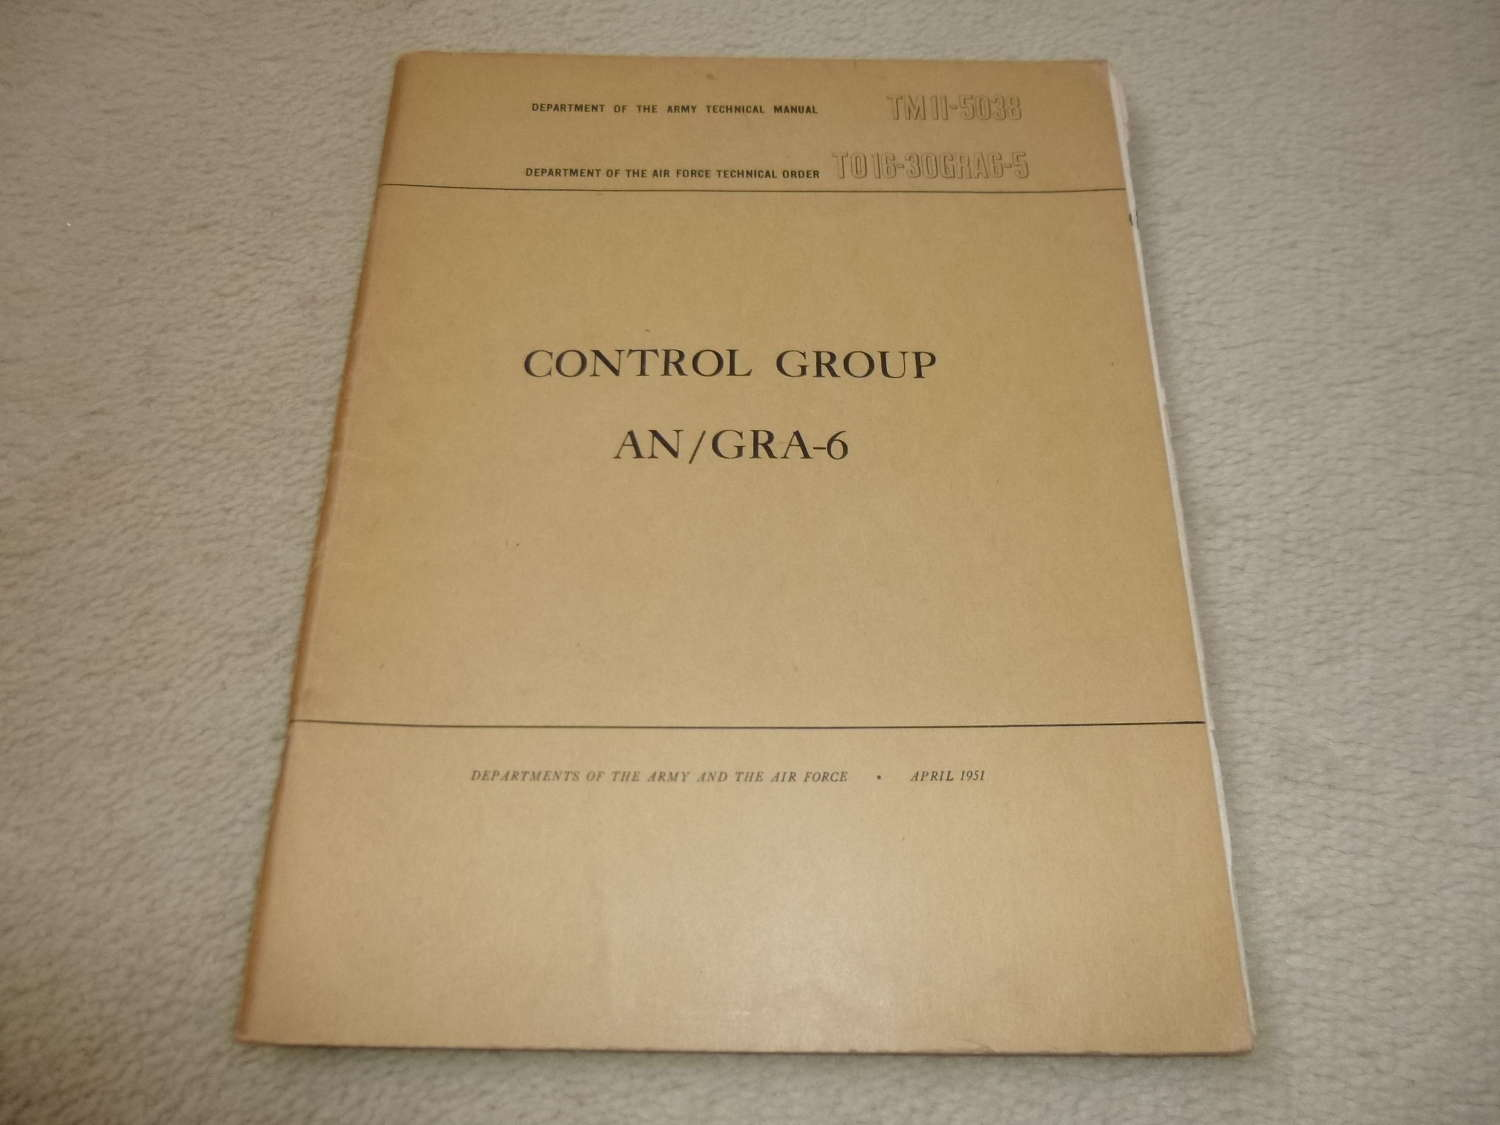 US Army TM11-5033 Control Group AN/GRA-6 Manual